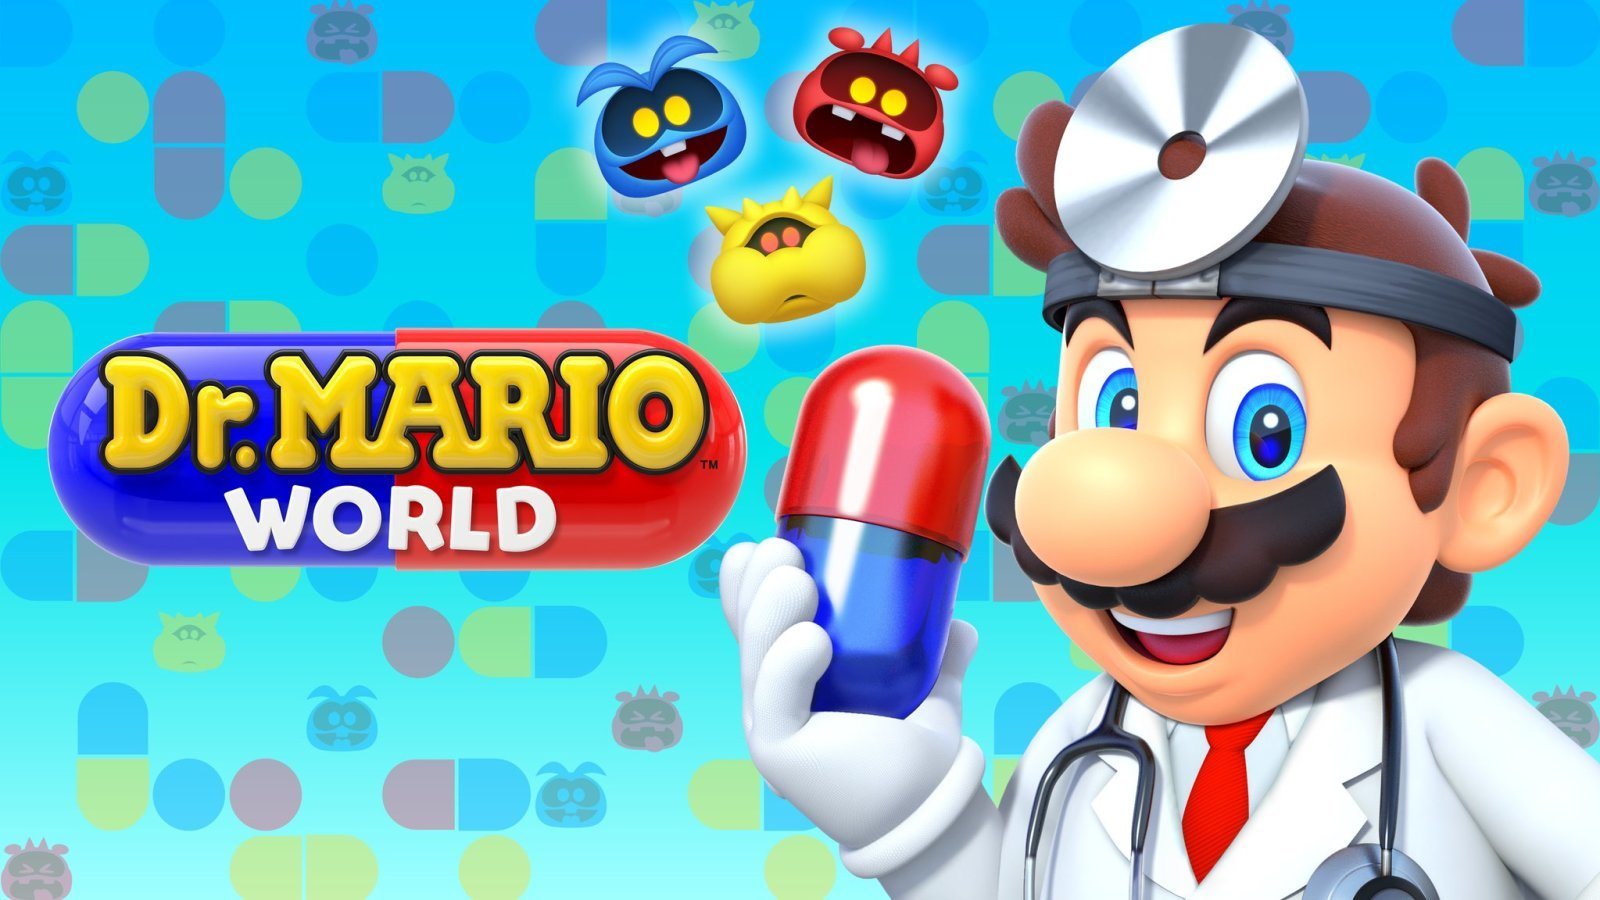 Dr. Mario World continues to lag after first month